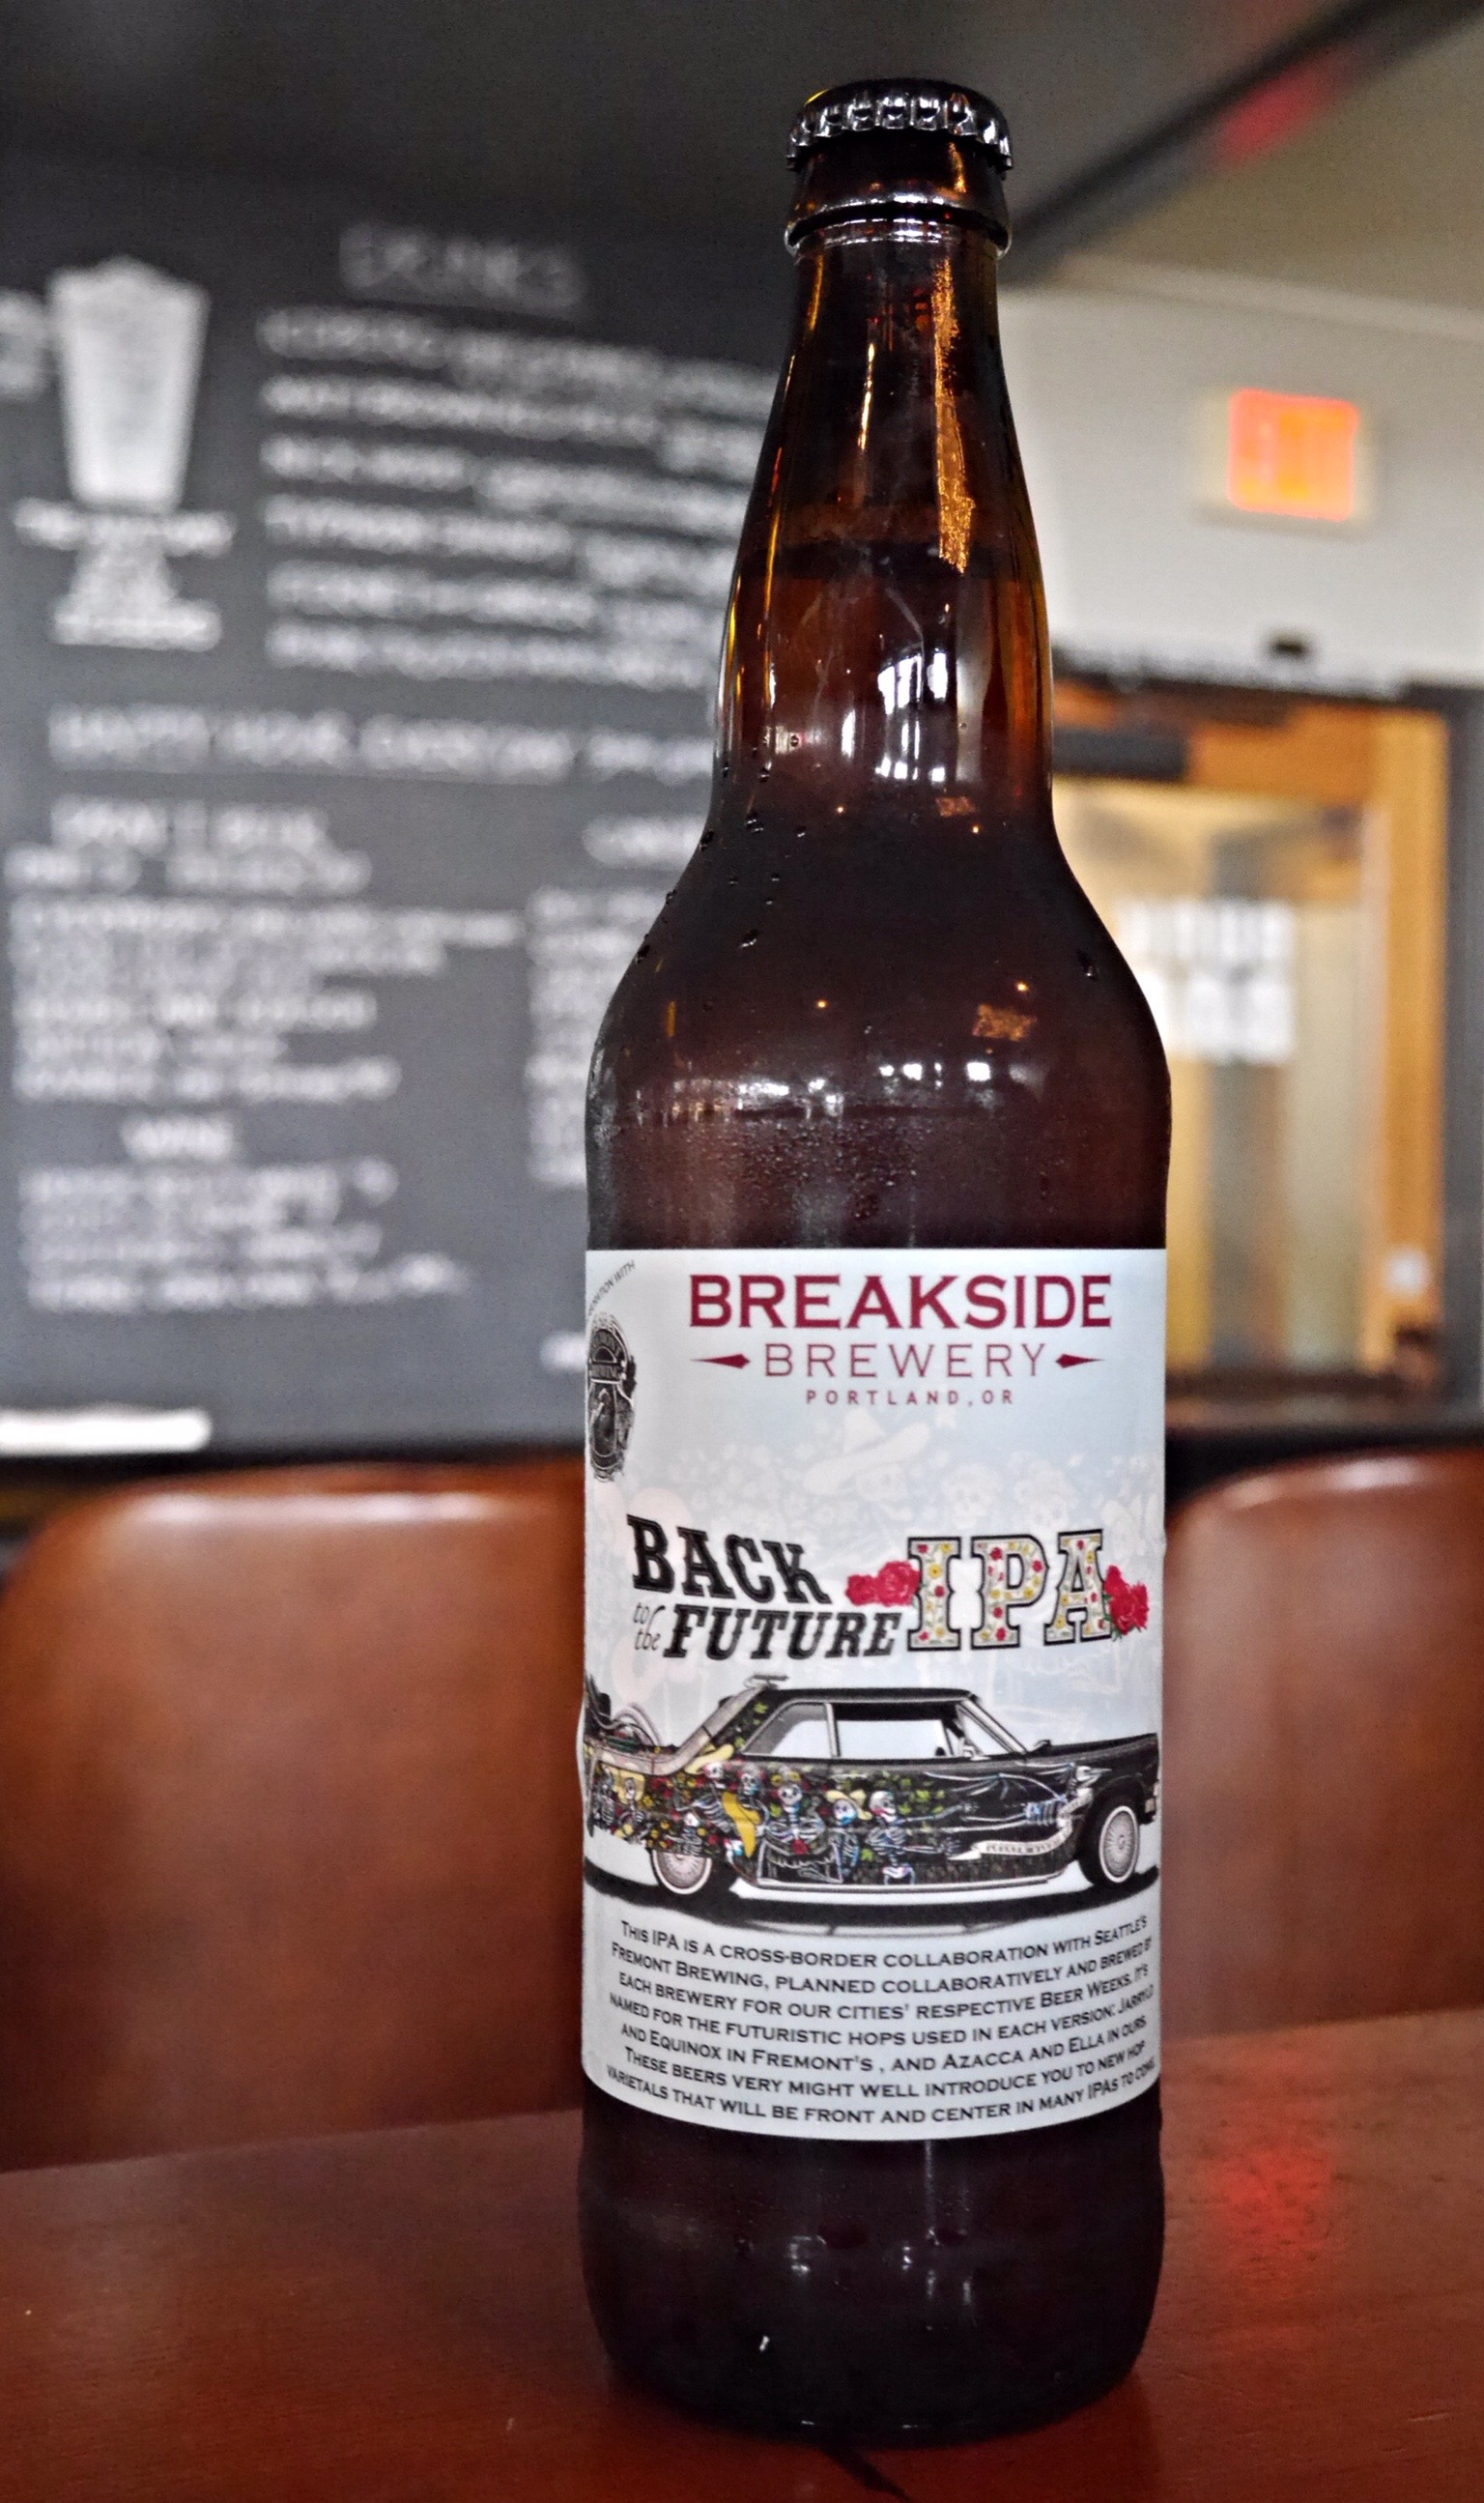 Breakside & Fremont Back to the Future IPA (photo by Cat Stelzer)